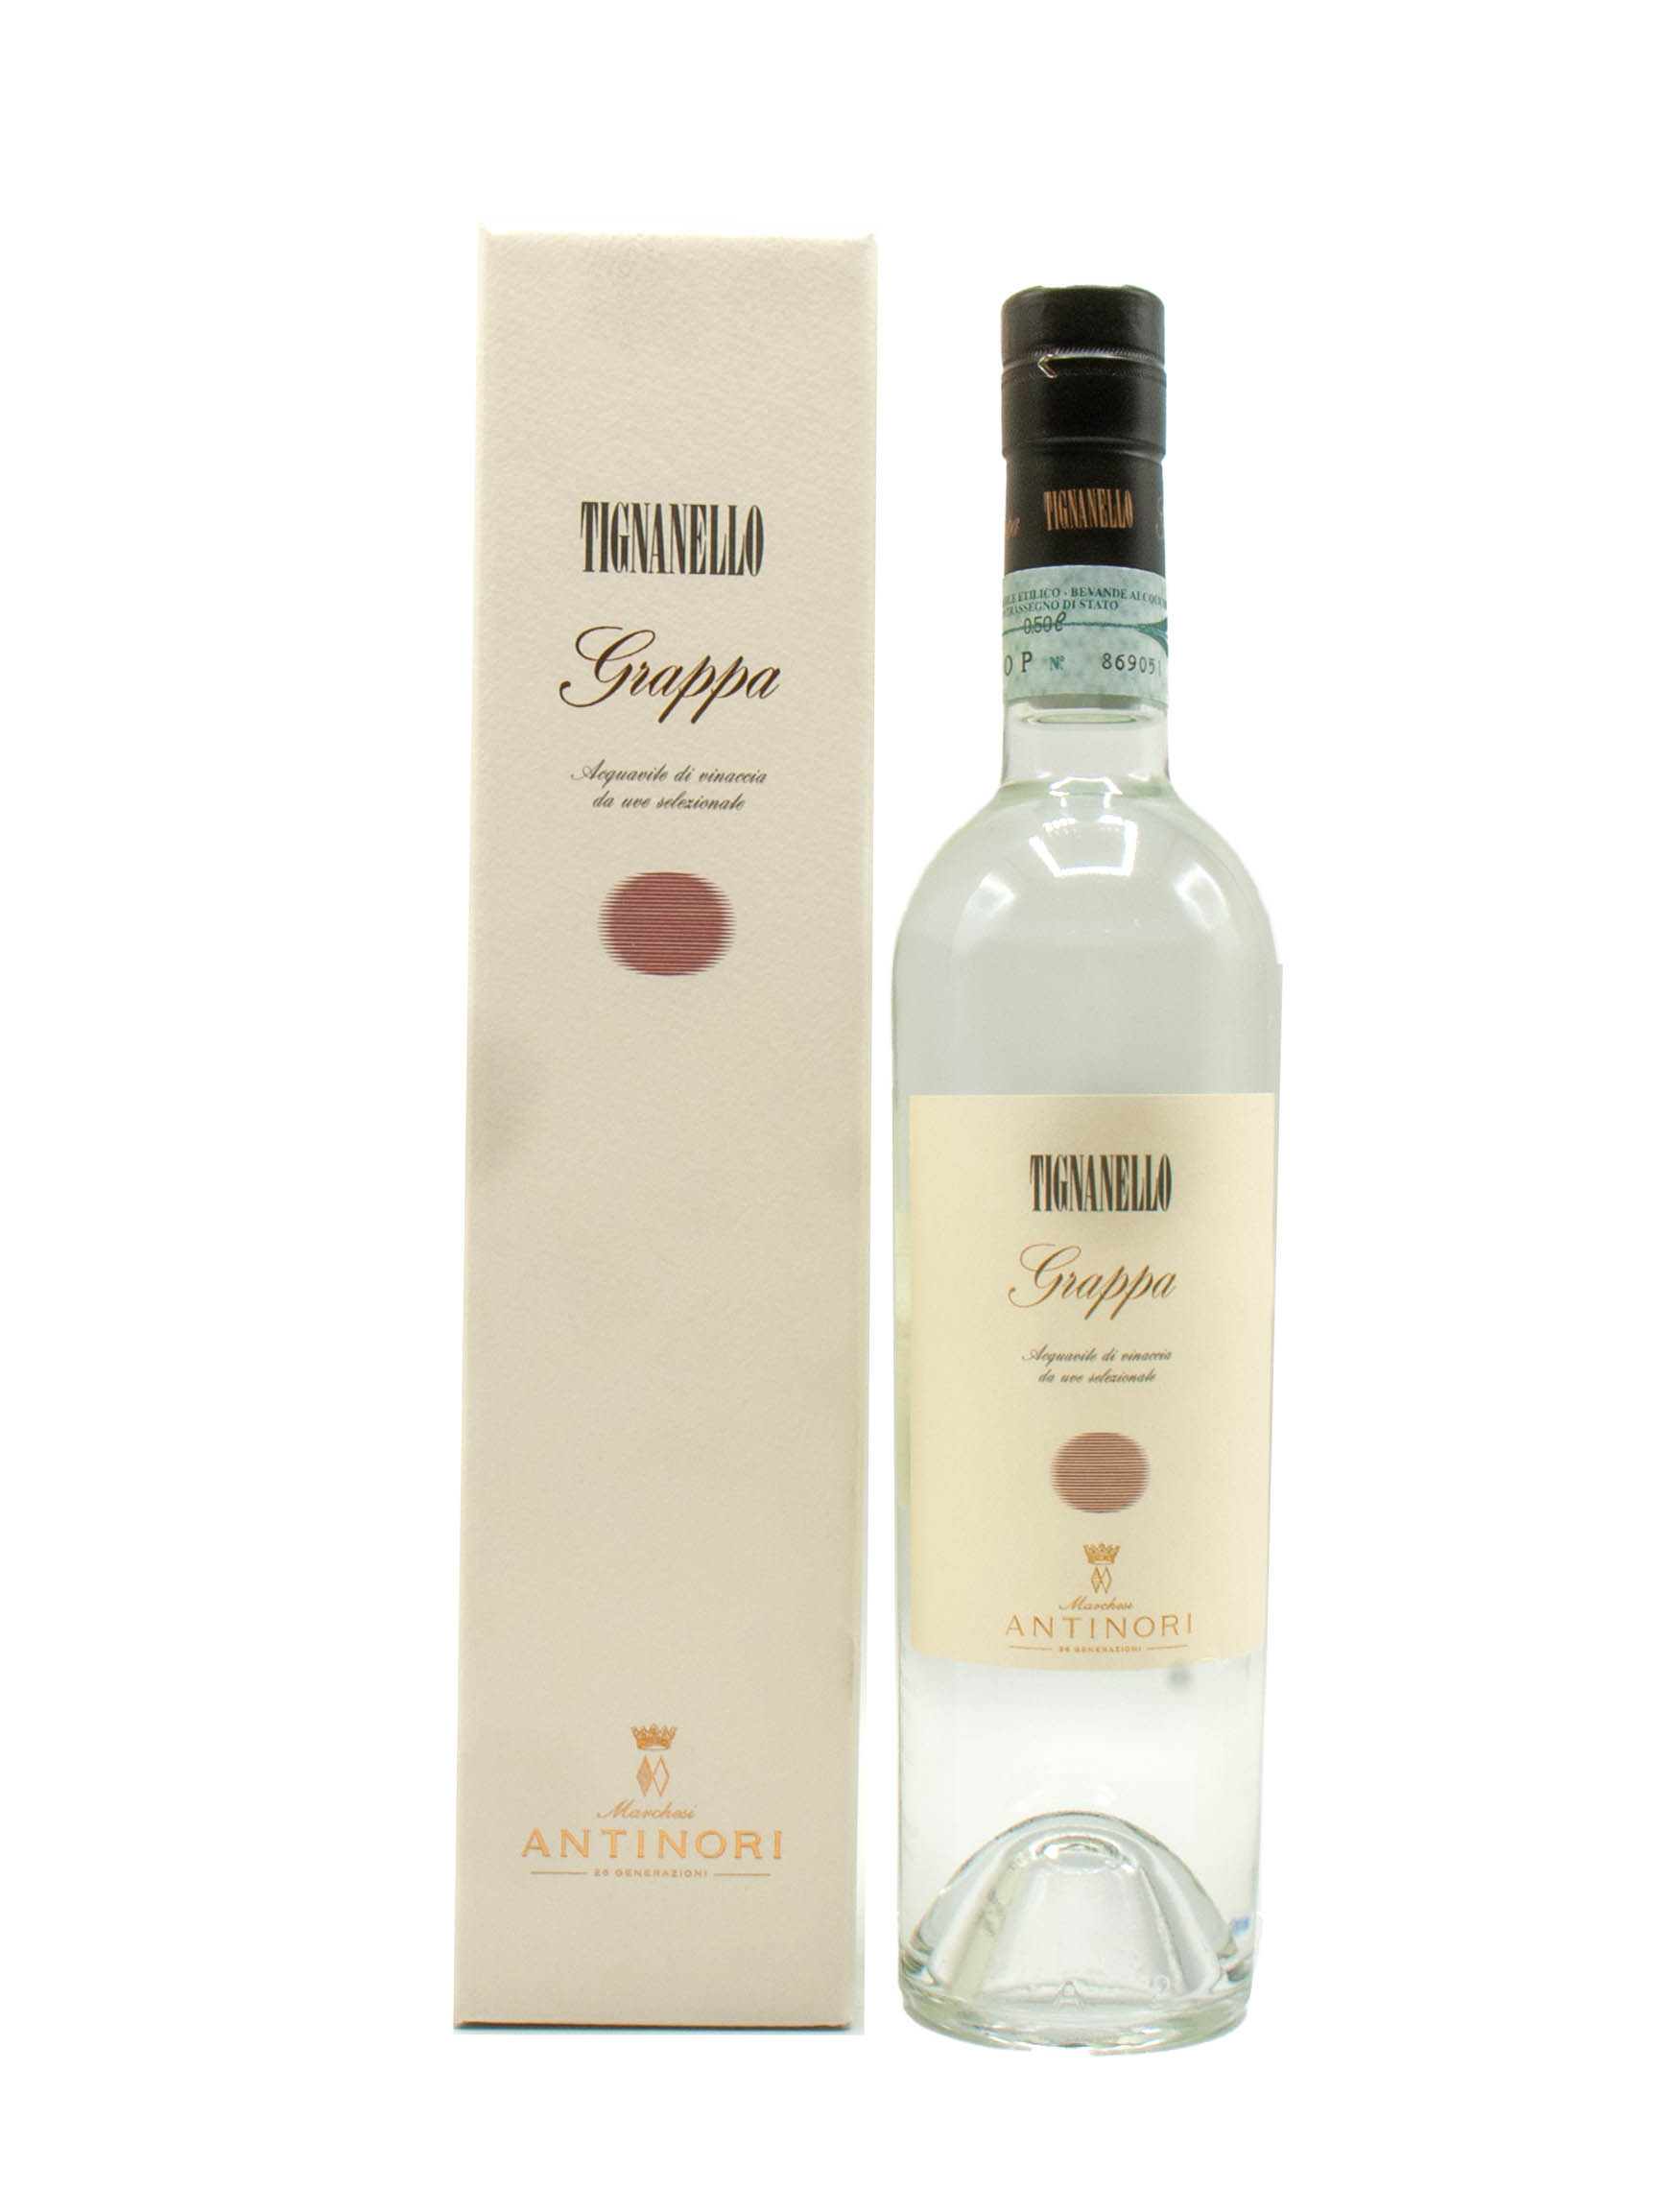 Grappa Tignanello Antinori Cl 50